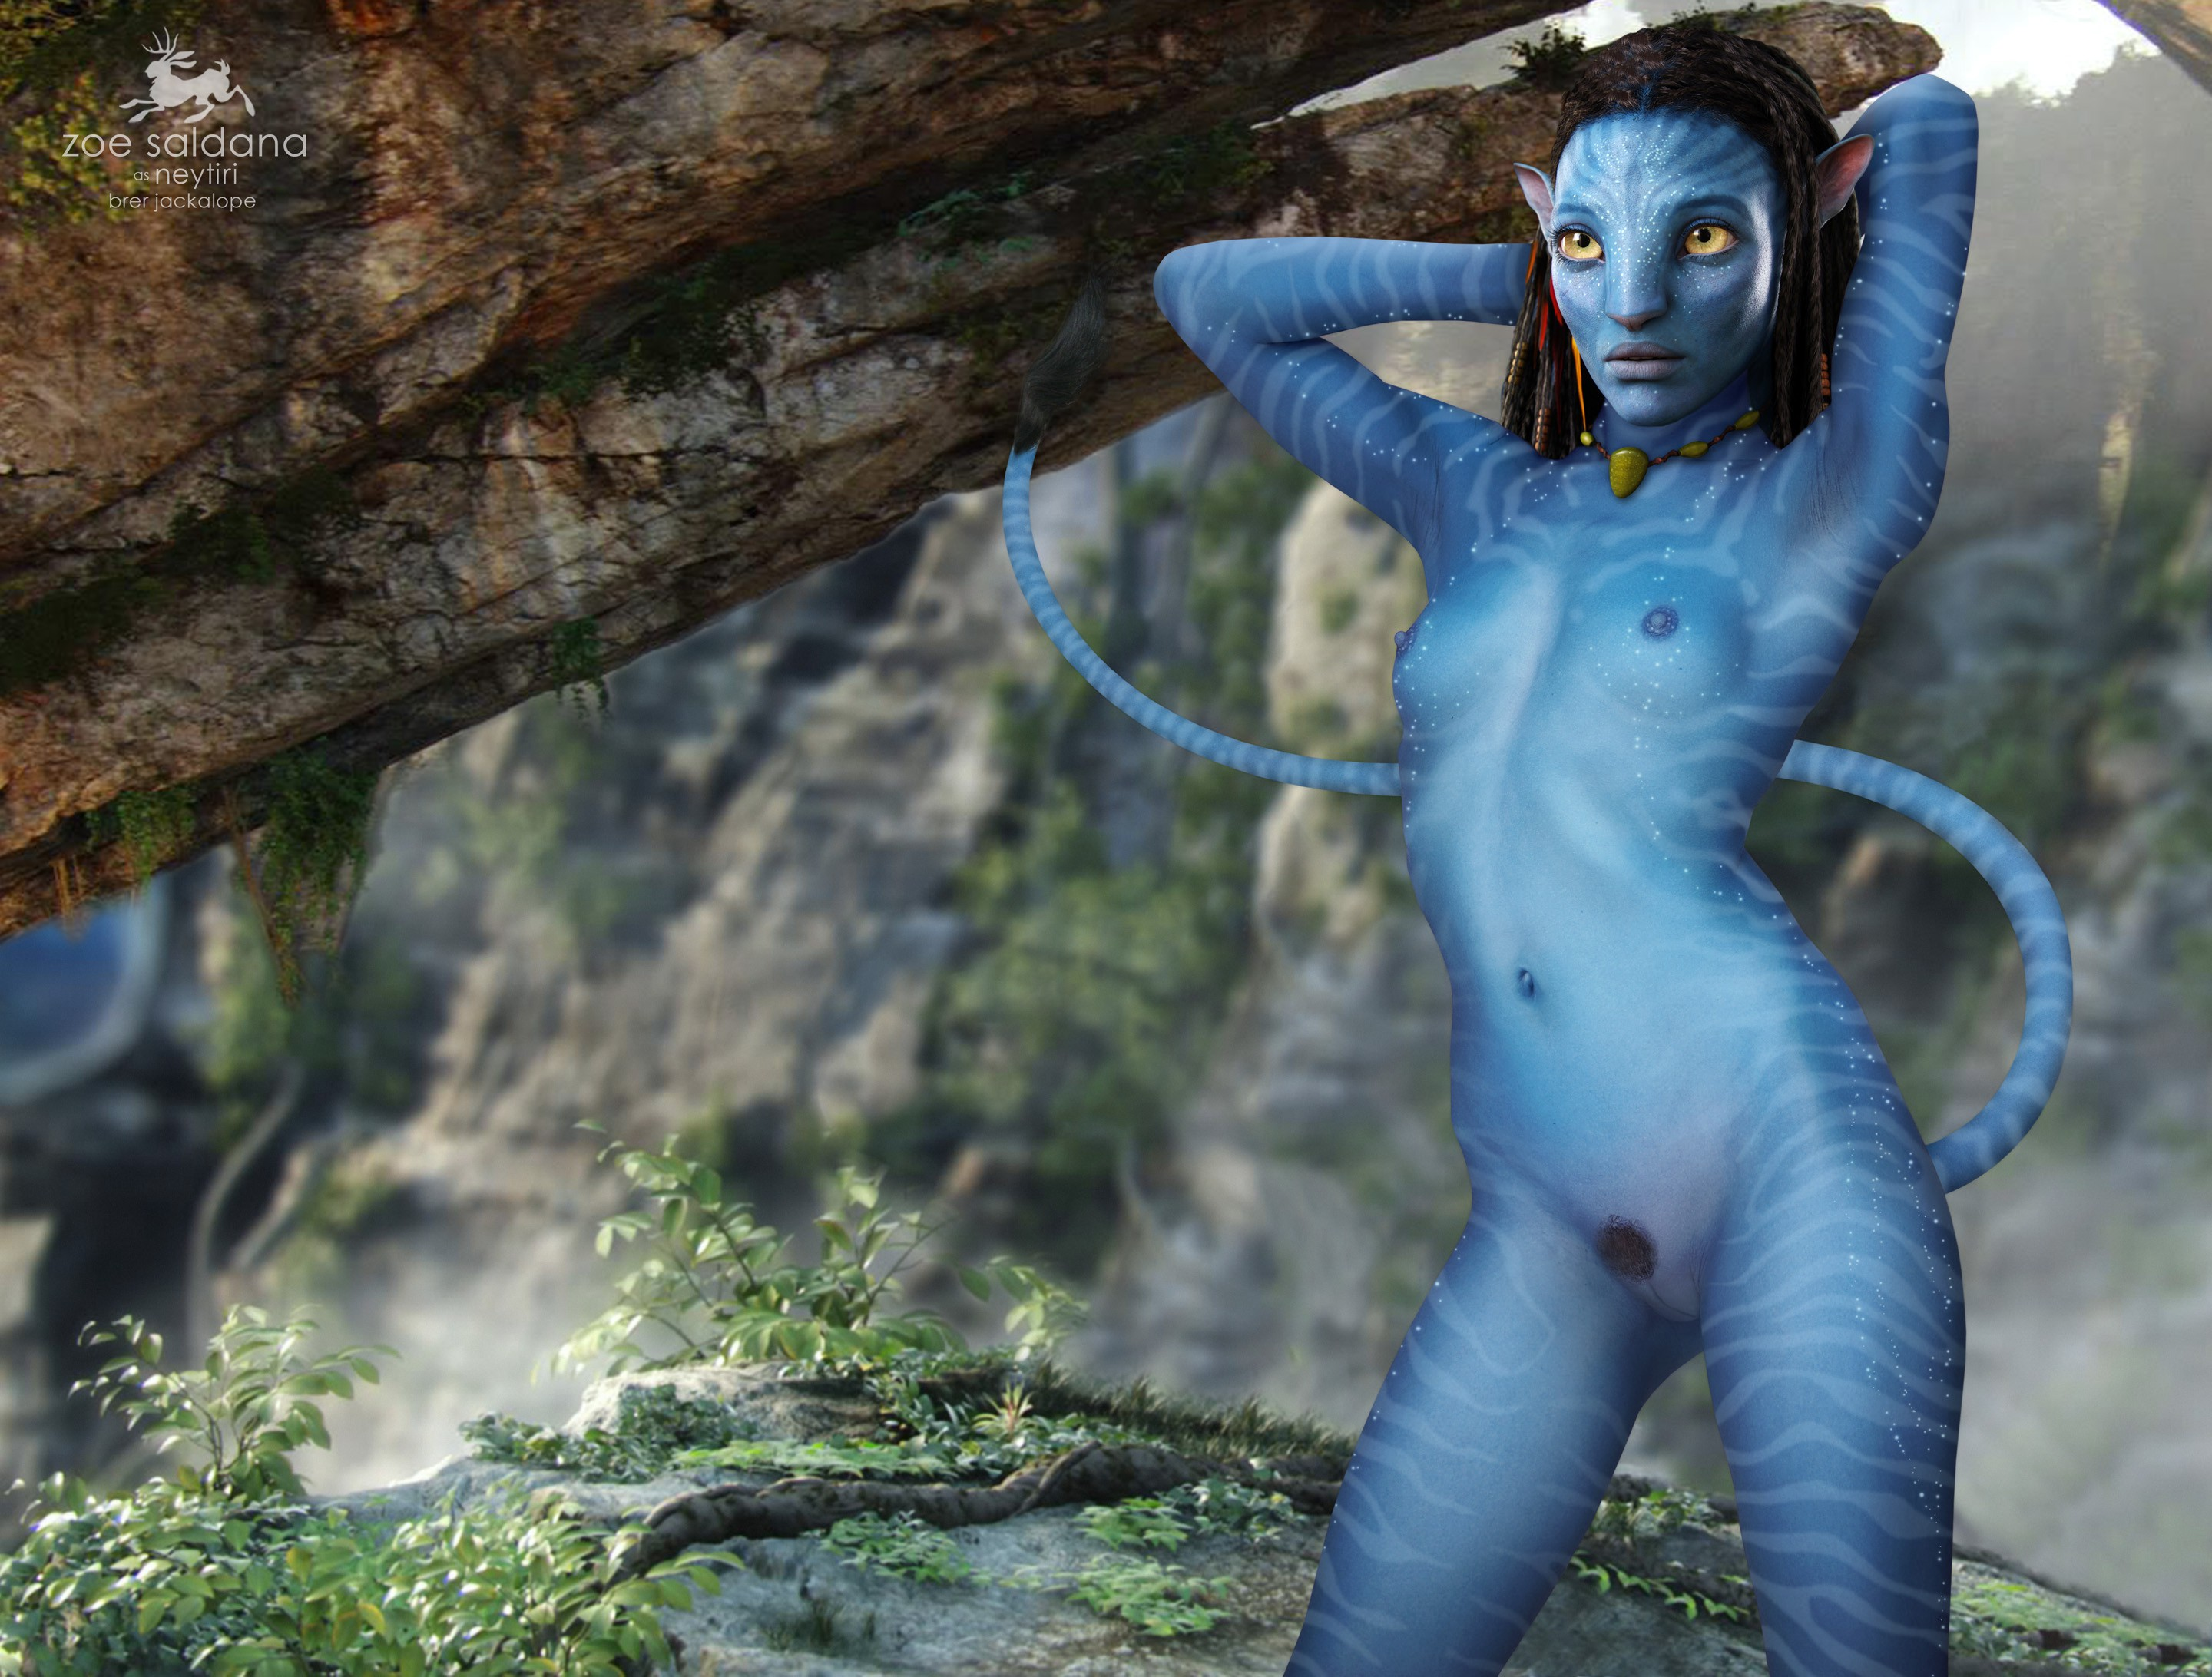 naked-avatar-characters-palm-harbor-pussy